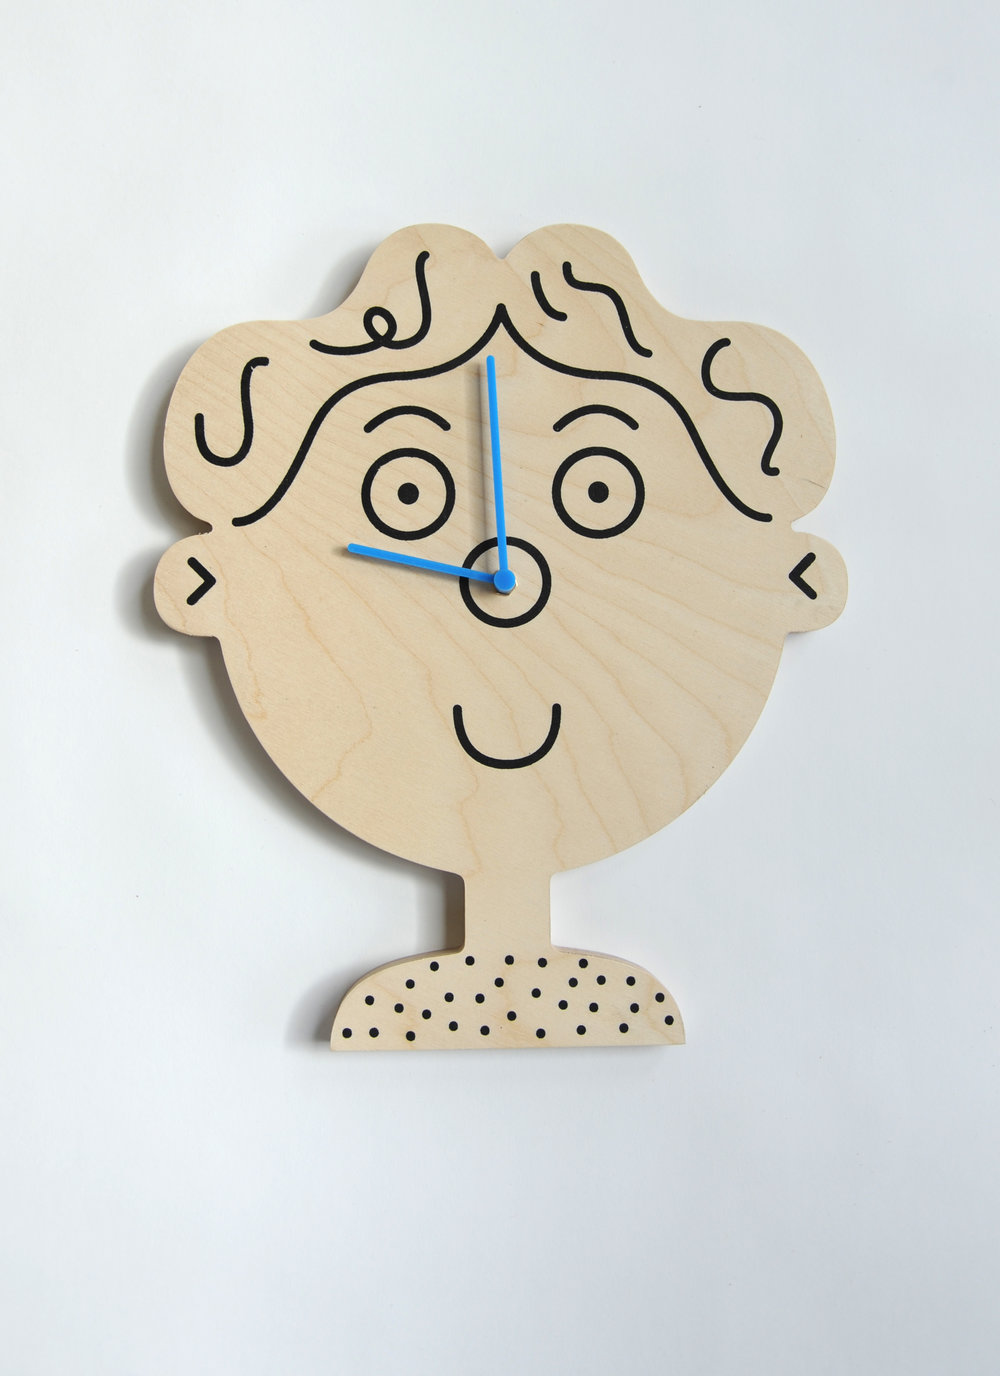 Boy Clock Lawrence Slater Unknown Production UK Contemporary Product Birch Plywood H 15.75 in, W 12 in, D 2 in LIST PRICE: $120 DESIGNER DISCOUNT PRICE: $ LEAD TIME: 3-5 Shipping & handling QUANTITY IN STOCK: 2 ONLINE PLATFORMS: kM Web, Artsy